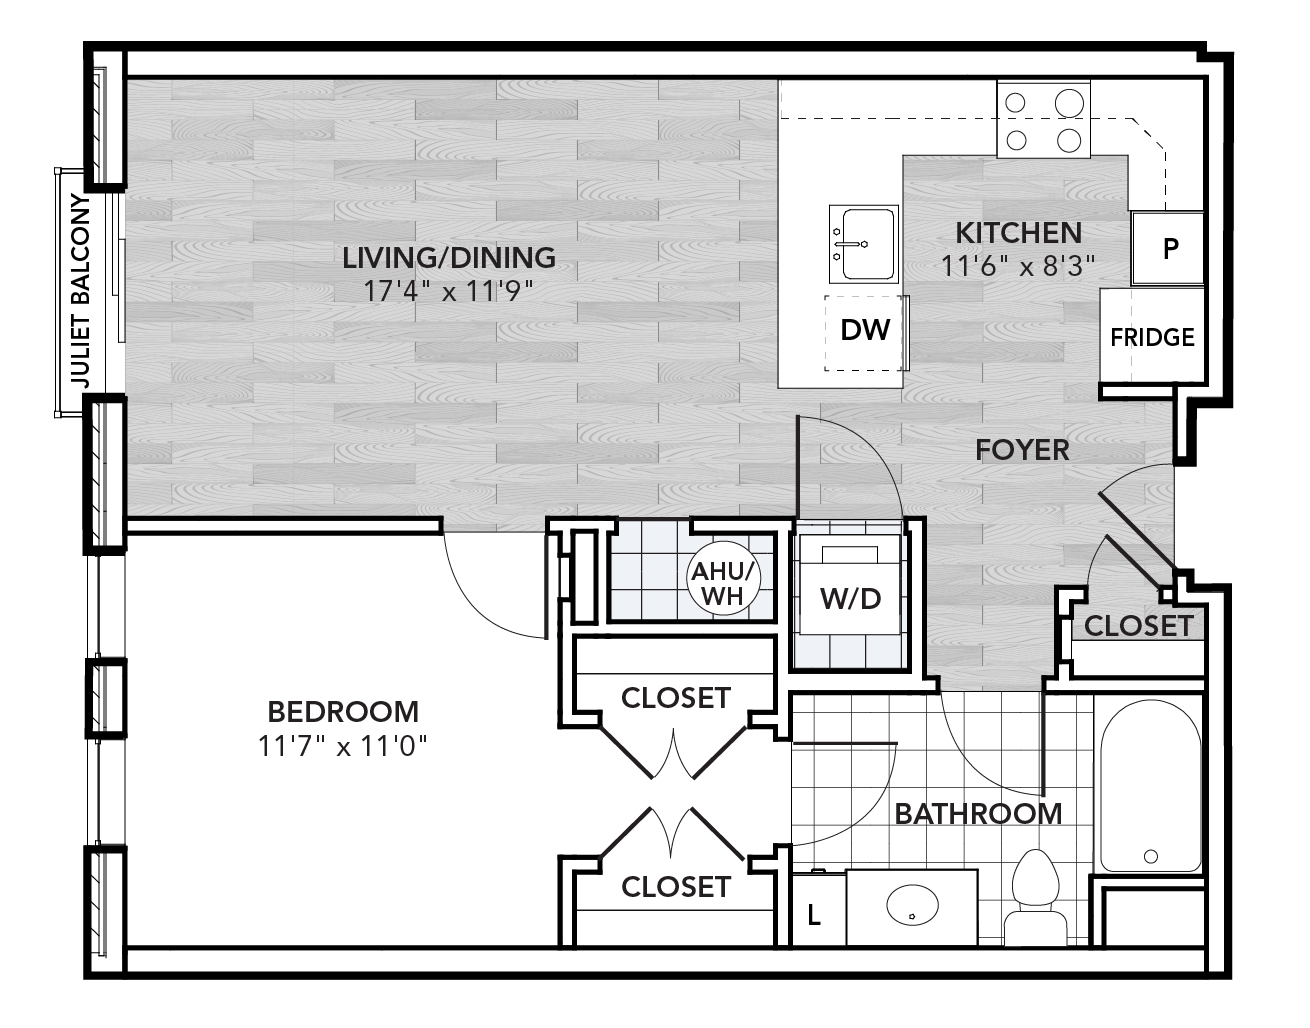 floor plan image unit id 213